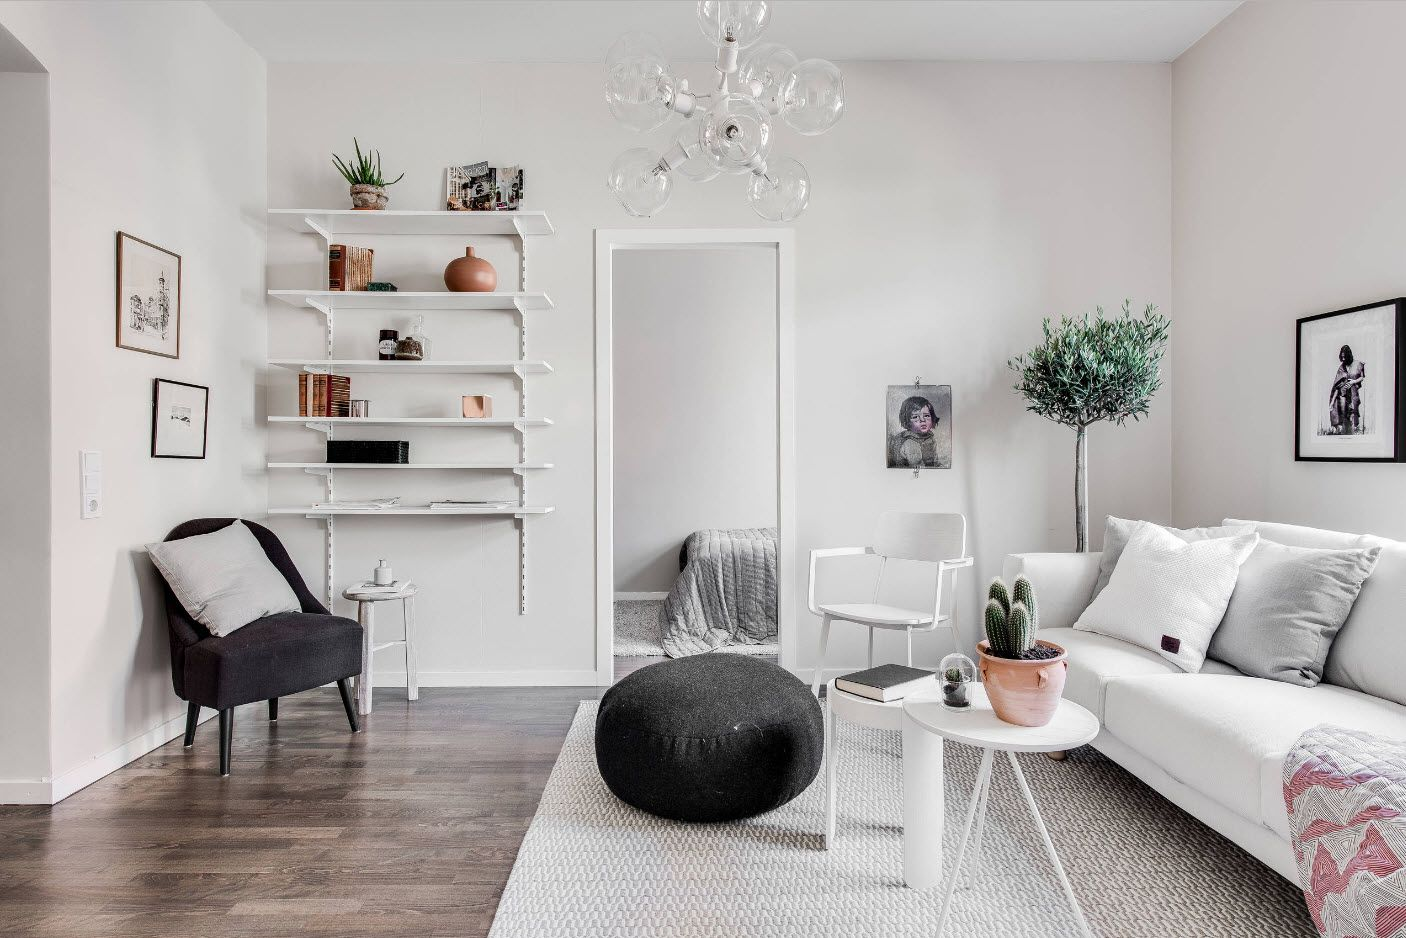 Absolutely gray decorated room with elements to animate the gloomy interior